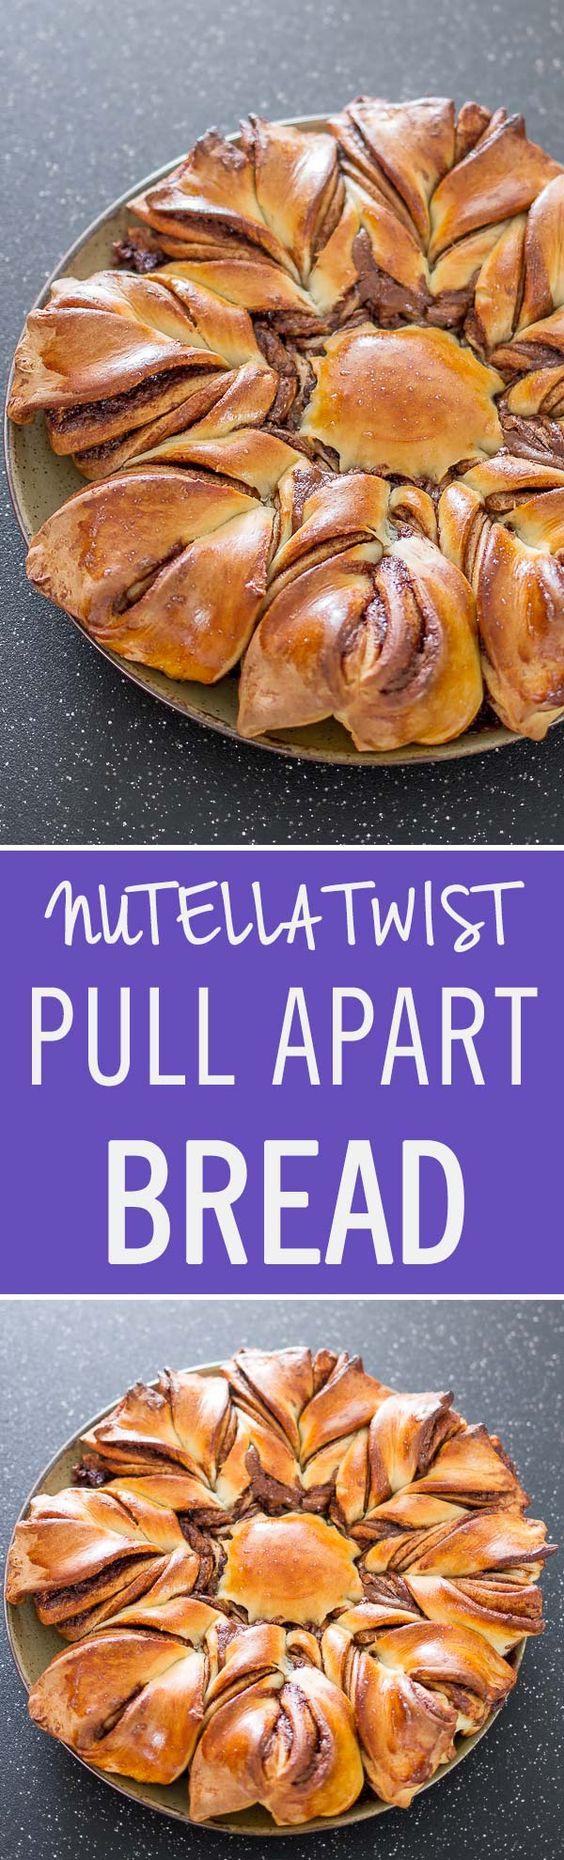 Pull apart bread, Pull apart and Nutella on Pinterest